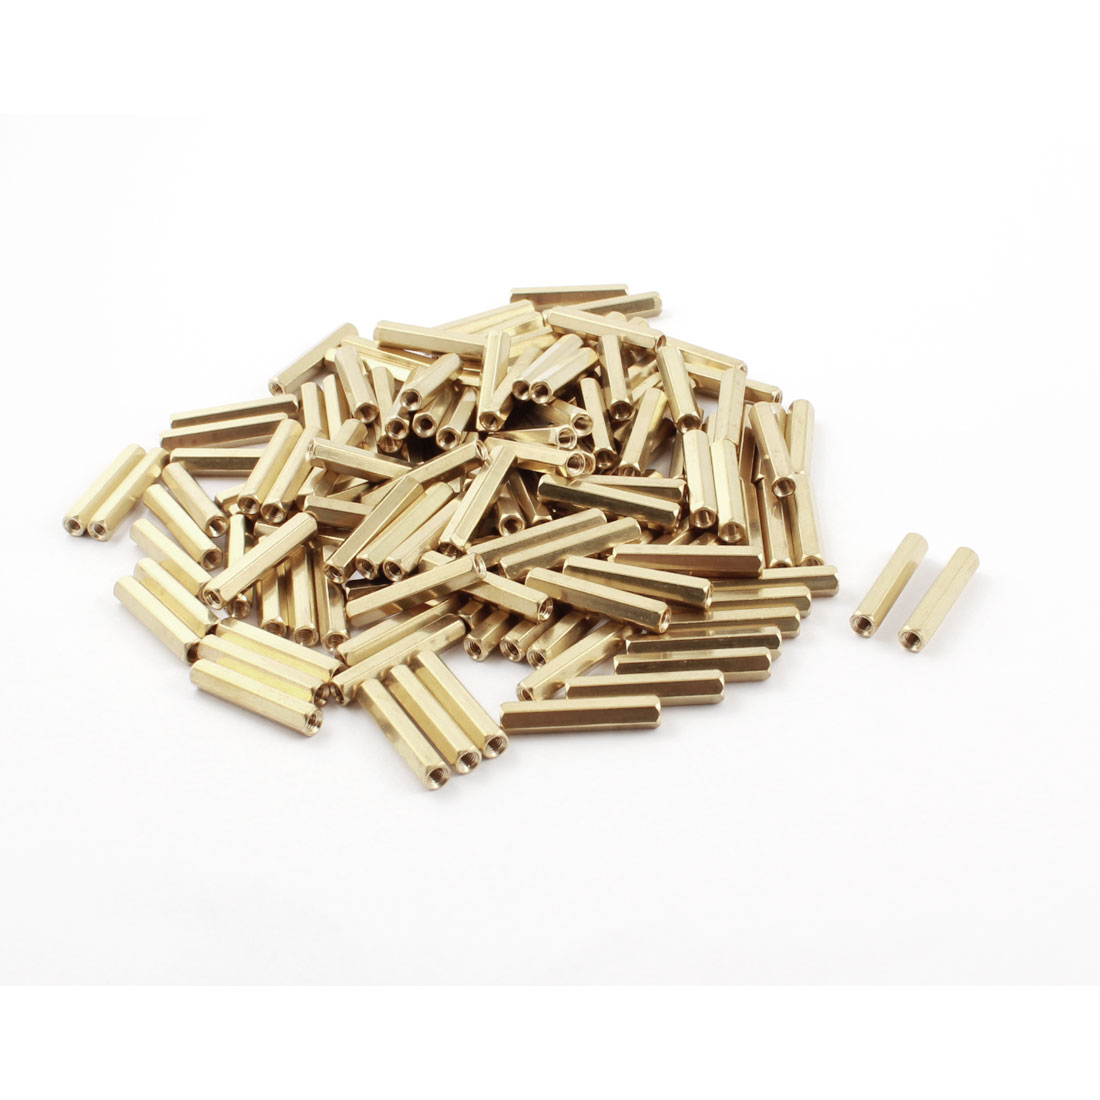 120Pcs M3 x 25mm Female Thread Dual Ends Brass Pillar PCB Standoff Hexagonal Nut Spacer